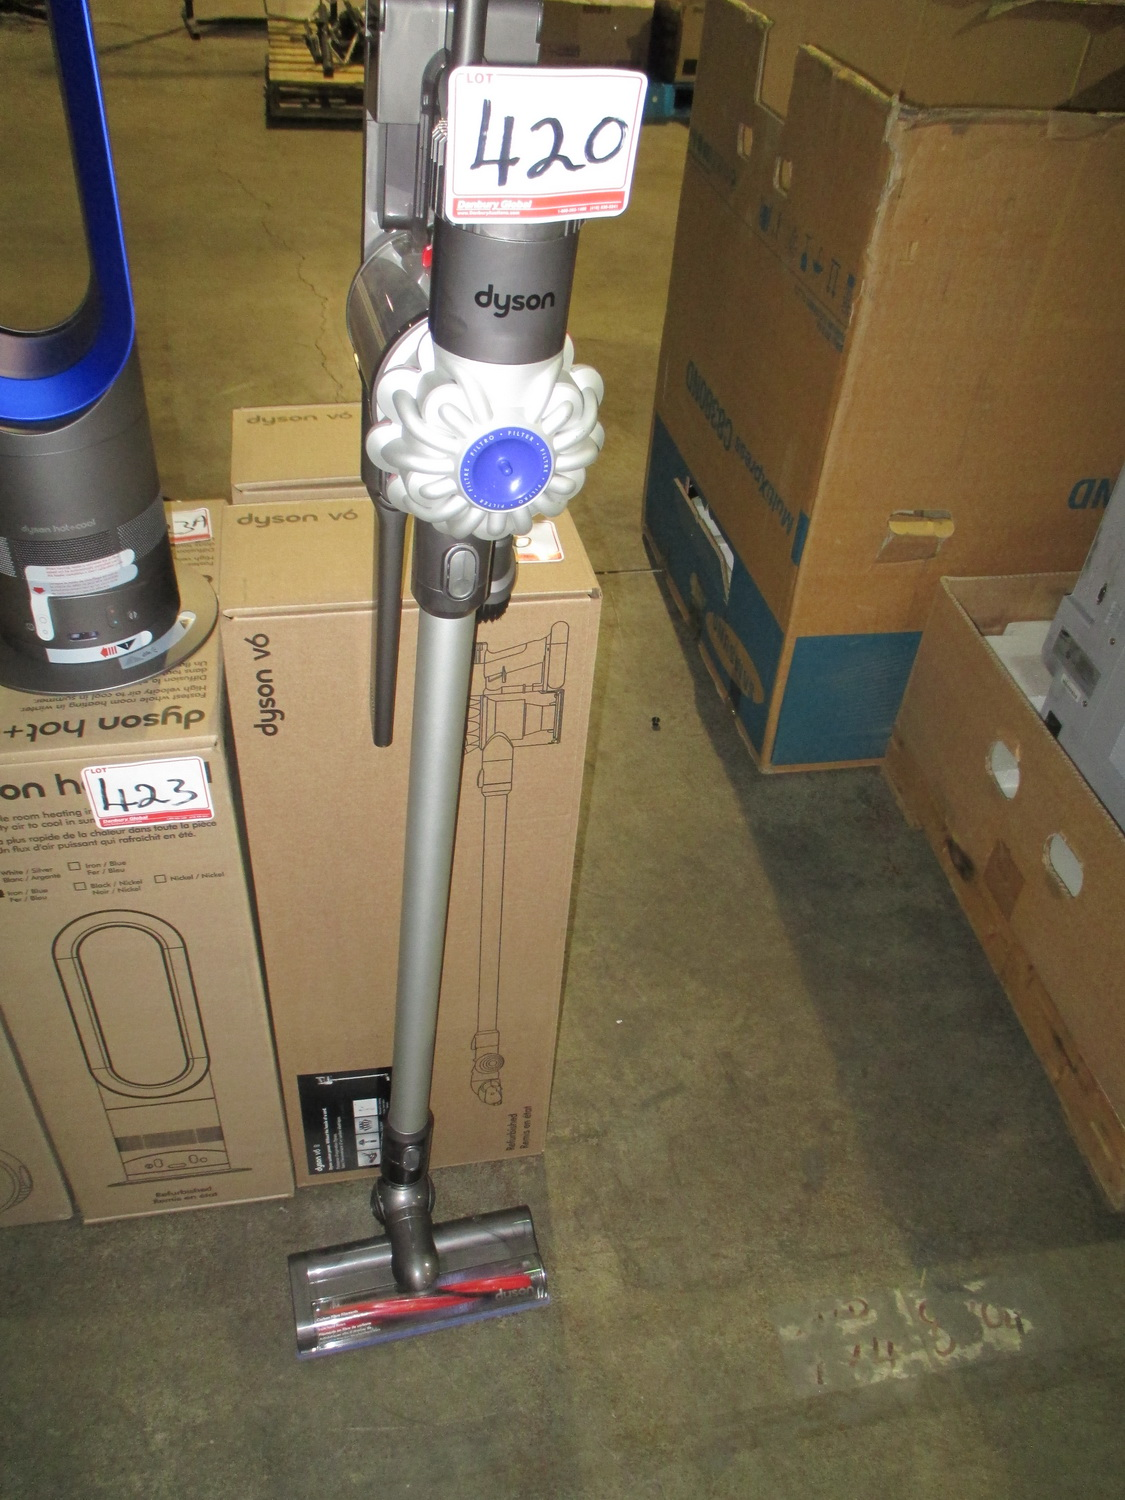 DYSON MOD V6 STICK VACUUM (FACTORY TESTED - IN BOX) (1-YEAR